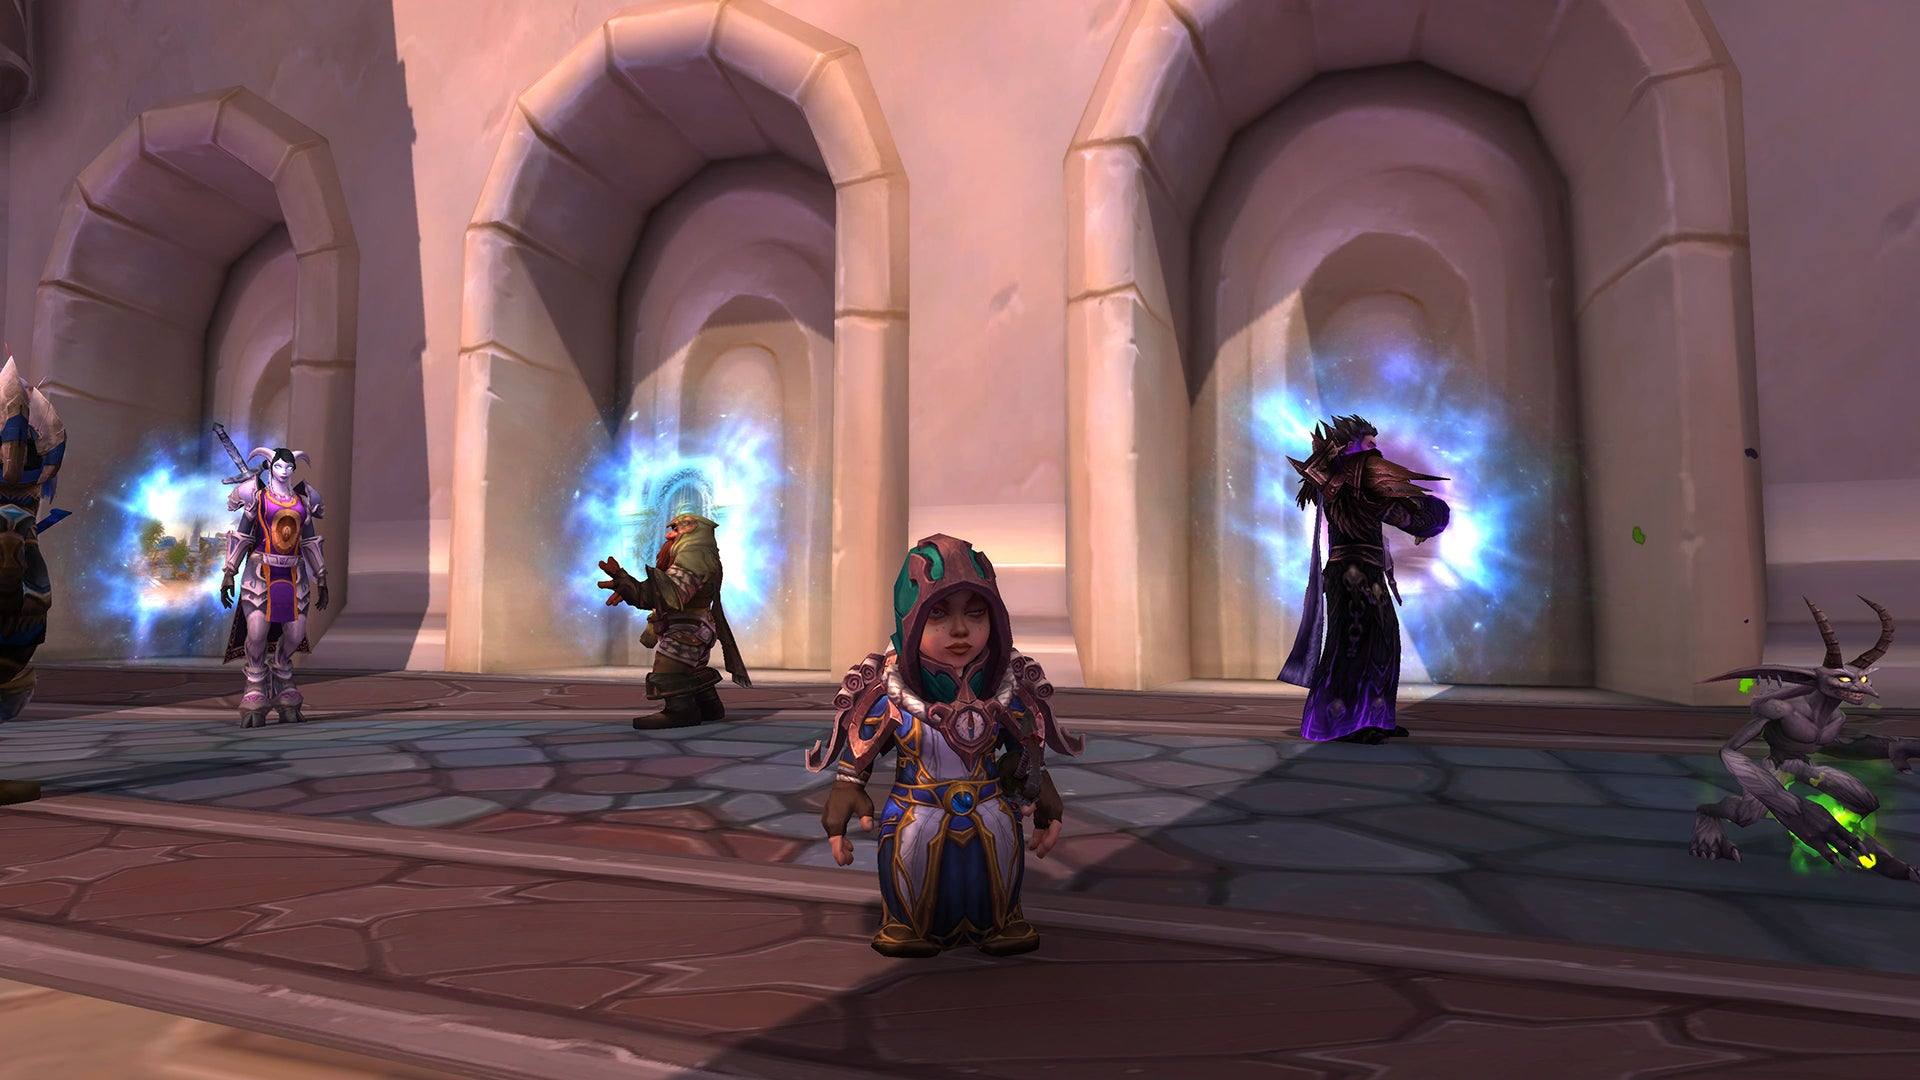 World Of Warcraft Fans Are Perturbed Over Pulled Portals